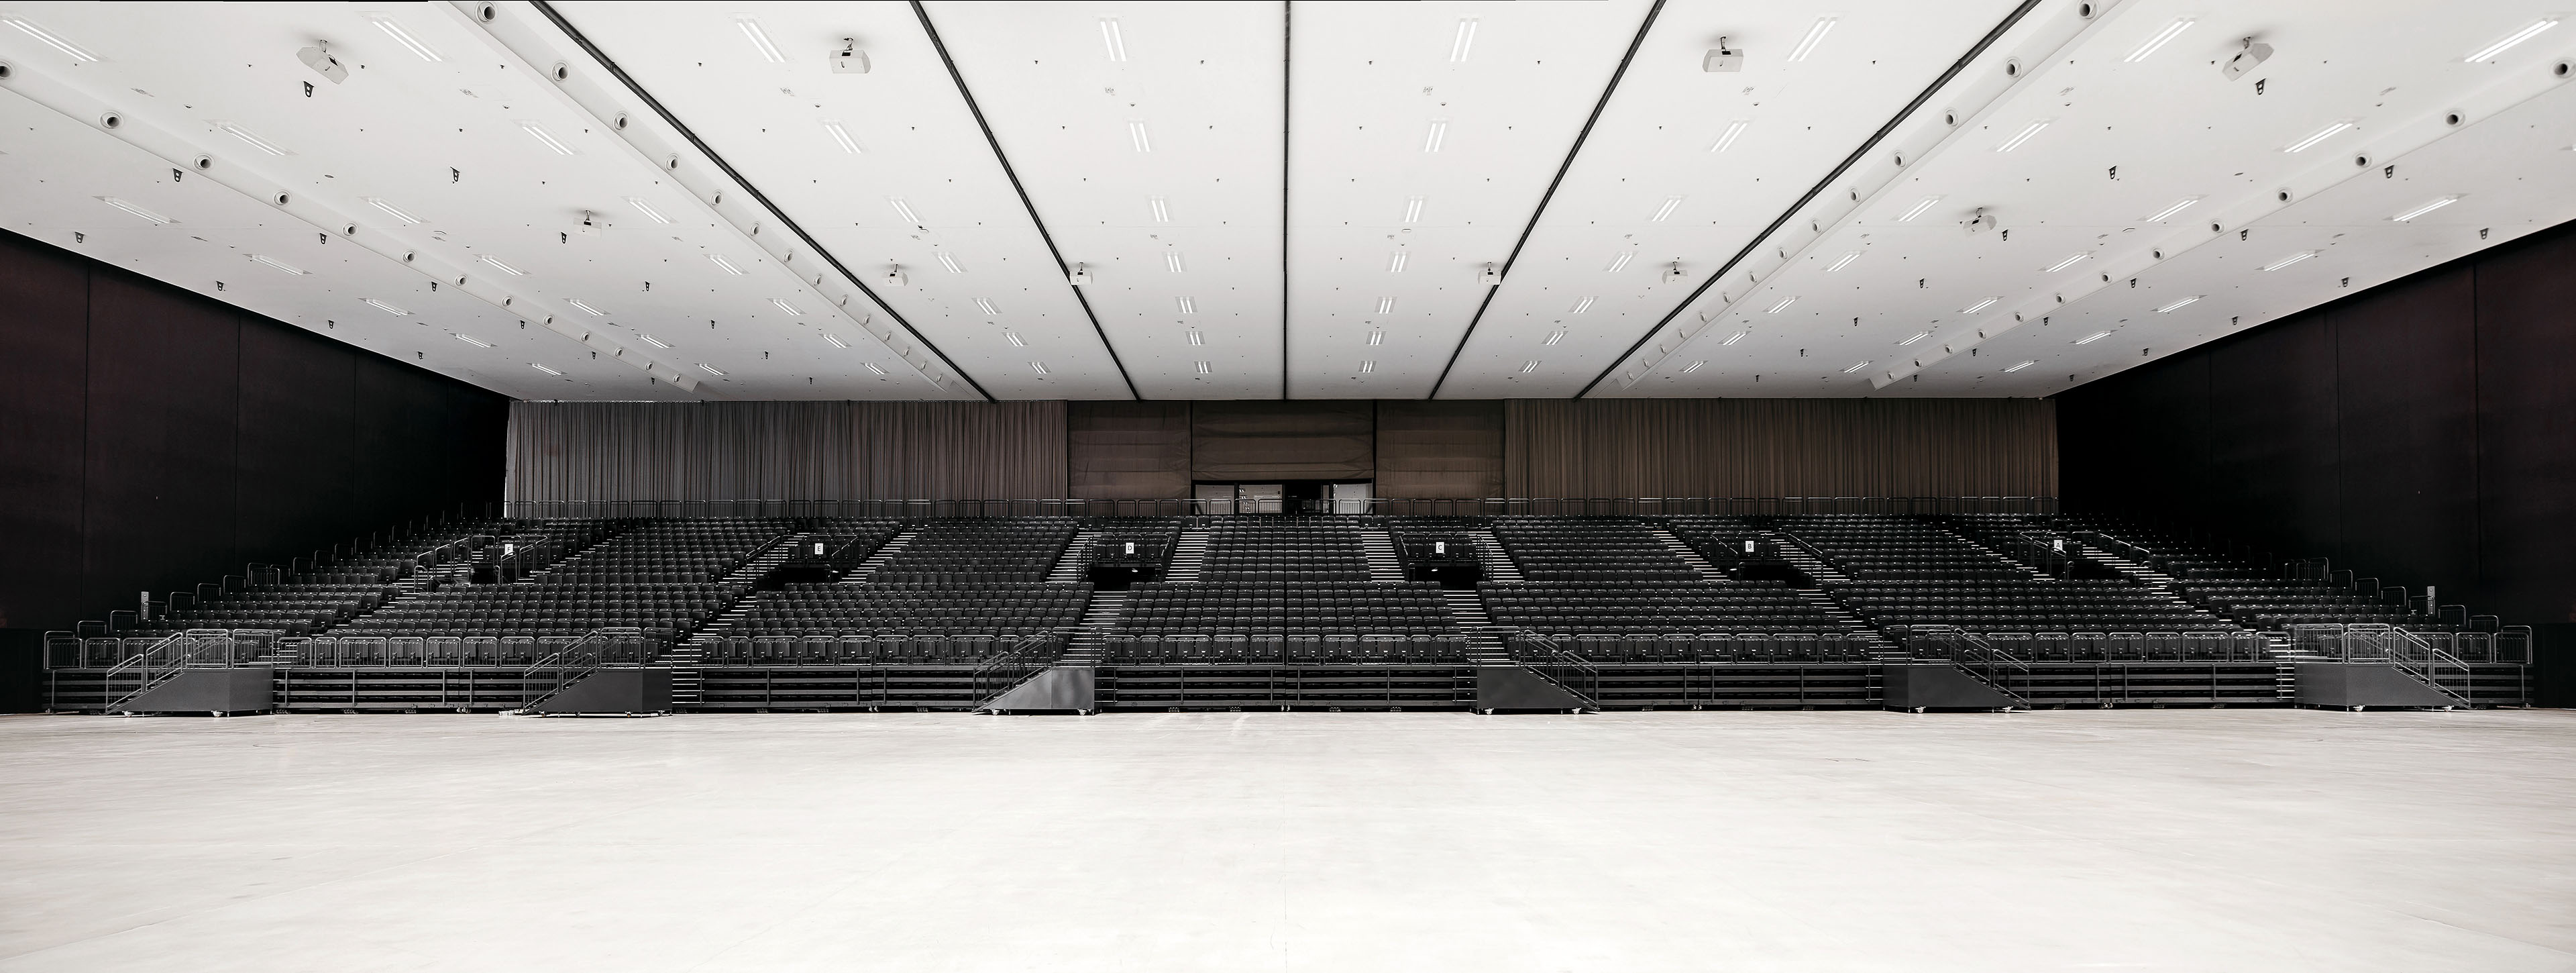 Auditorium seating systems